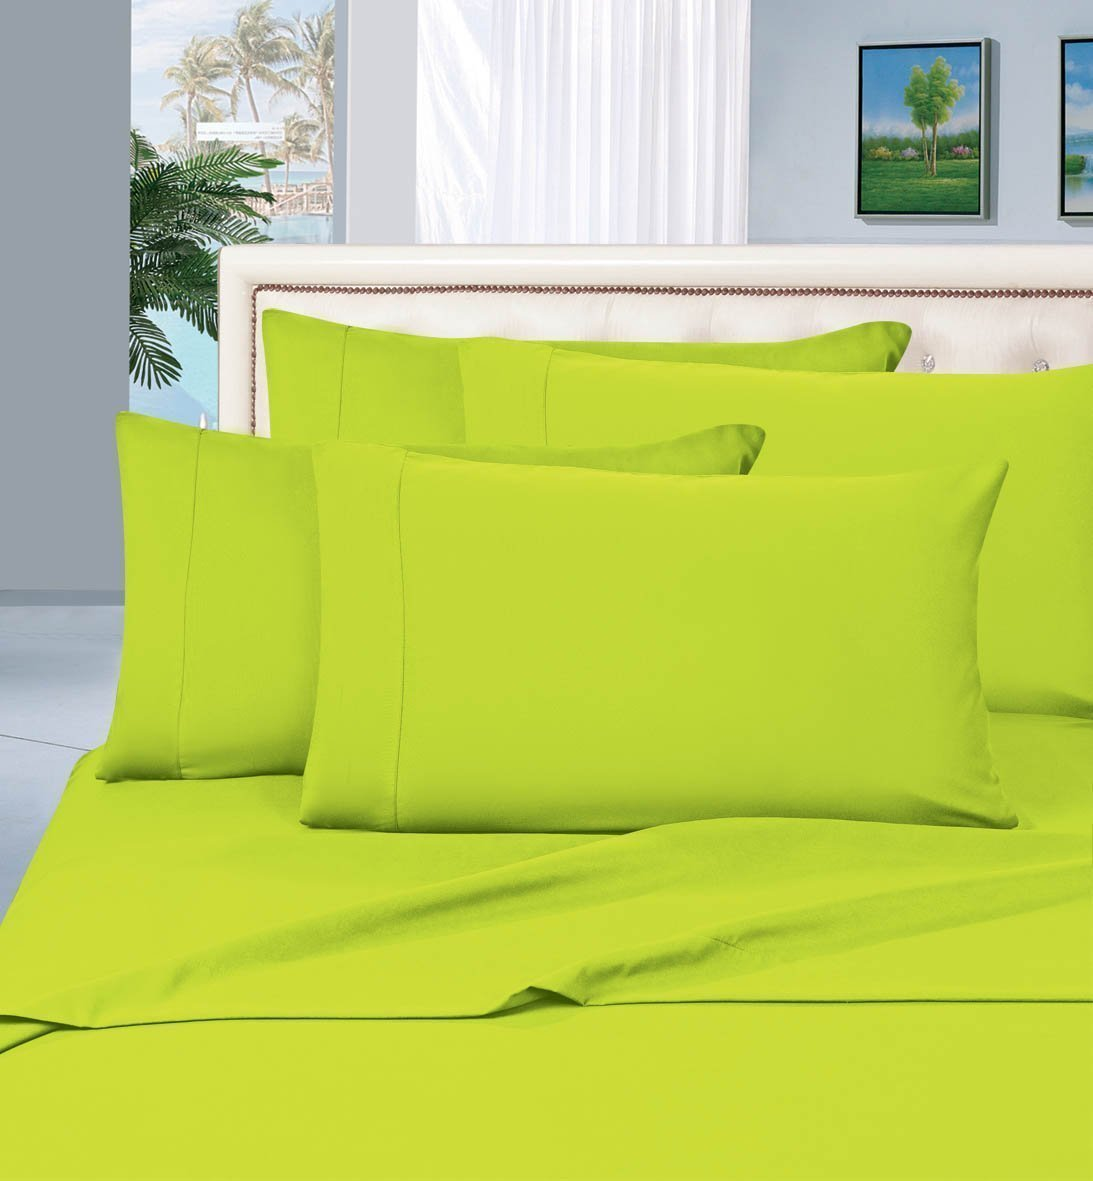 Merveilleux 4 Piece Lime Green Bed Sheet Set